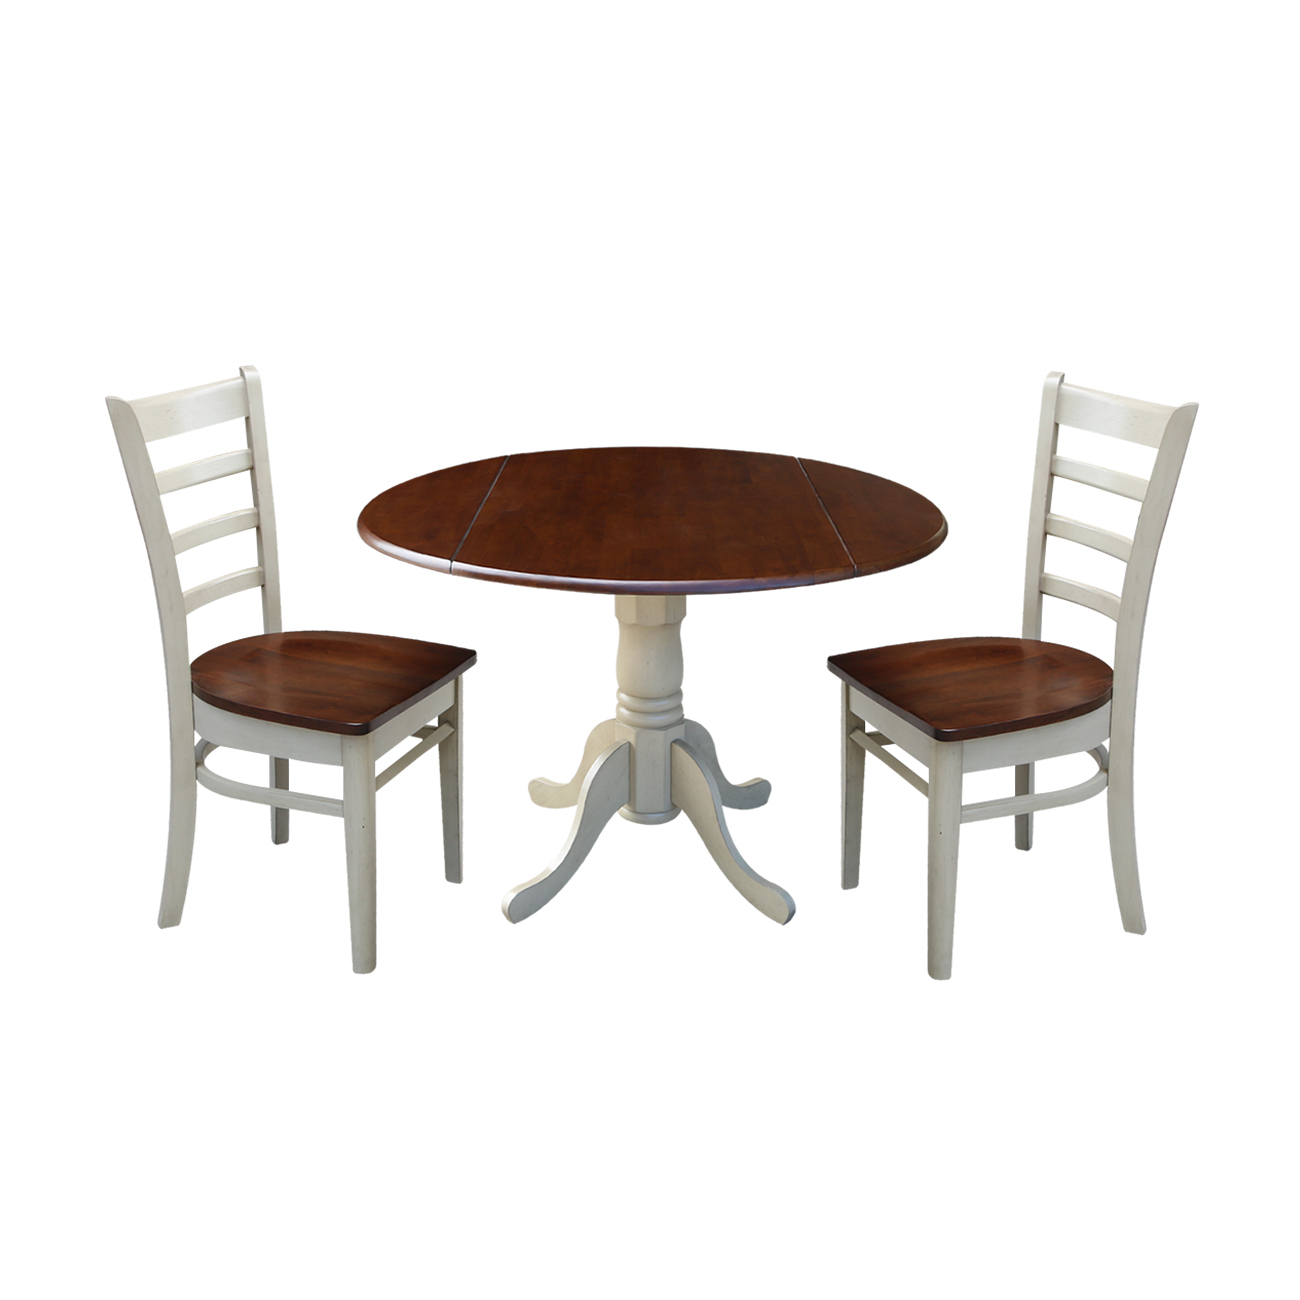 "42"" Dual Drop Leaf Table and 2 Emily Chairs - Almond/Espresso - 3 Piece Set"